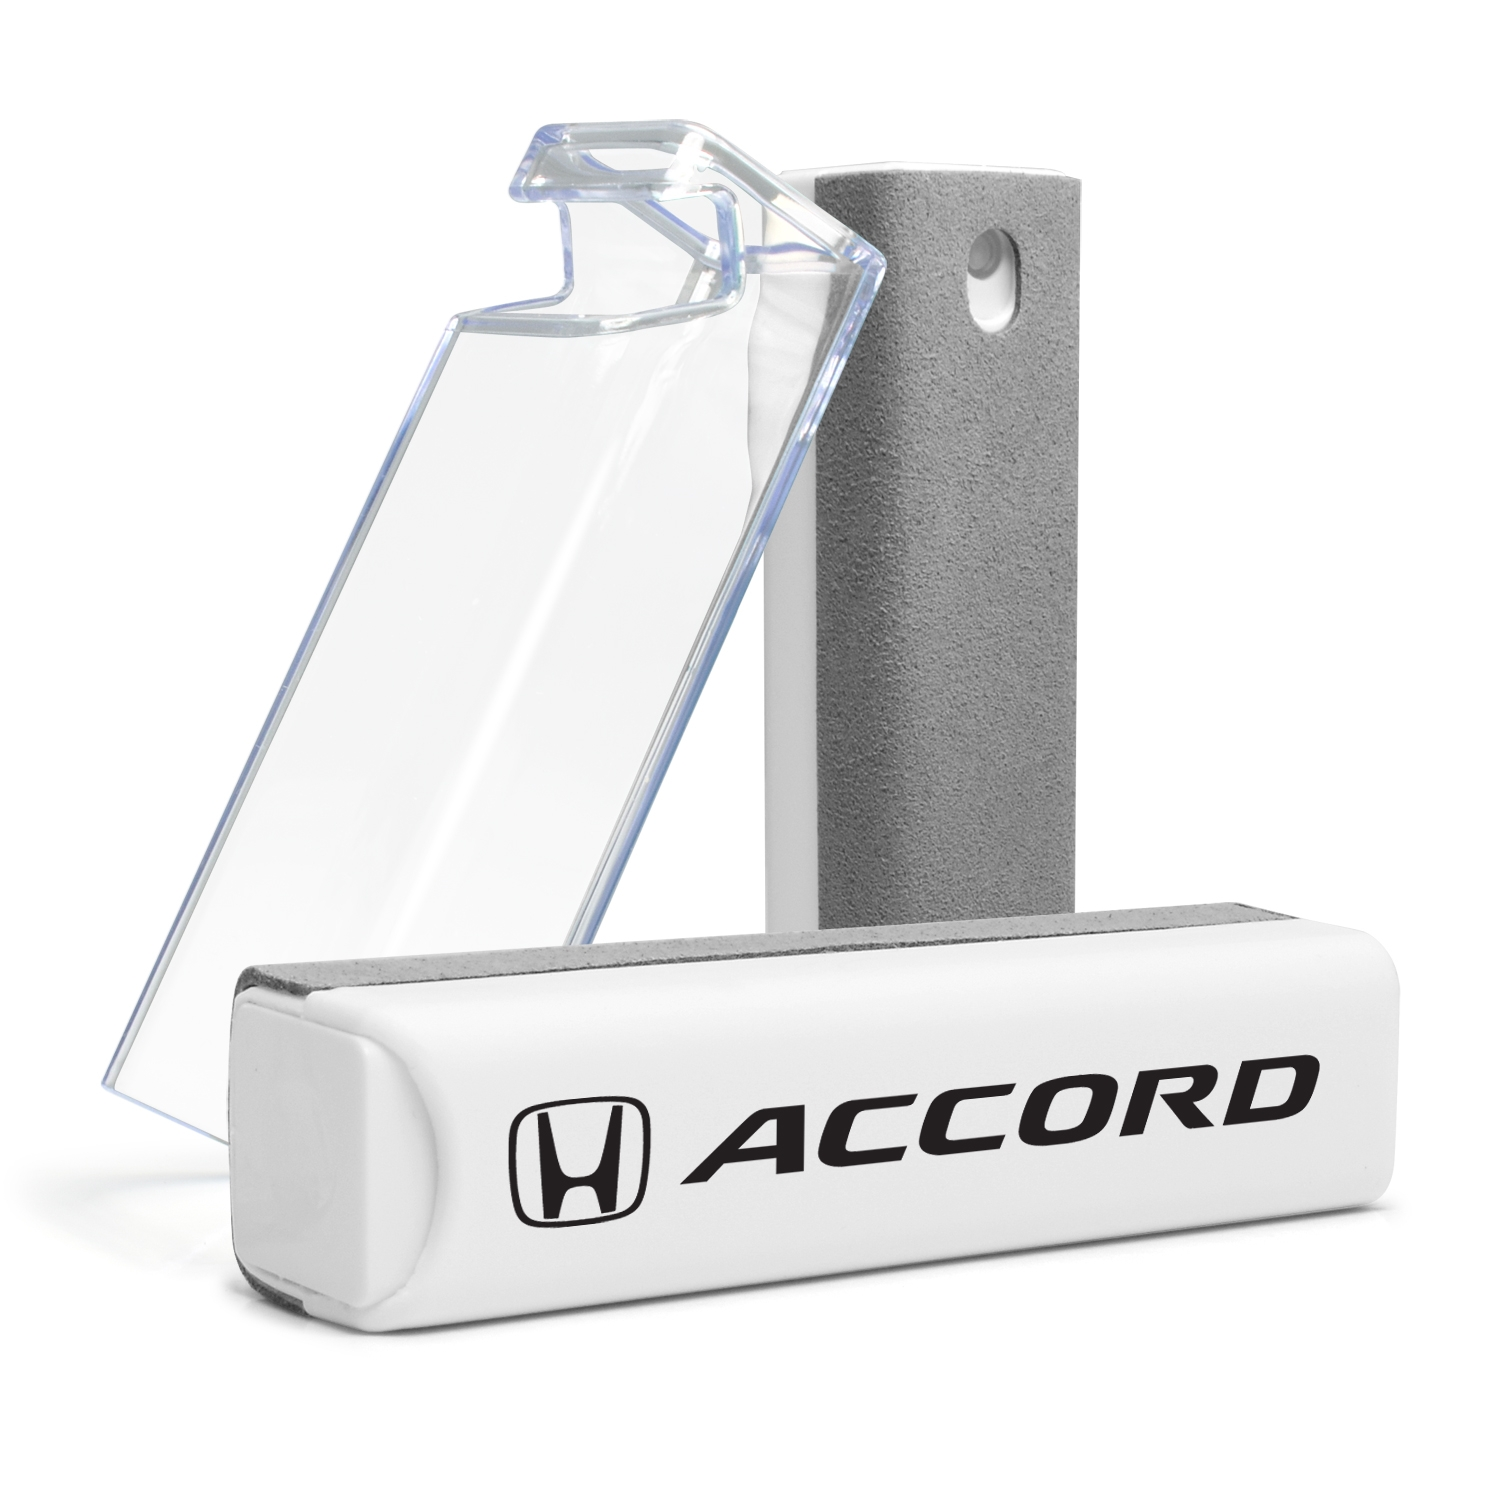 Honda Accord All-in-One Gray Wipe Navigation Screen Cleaner with Clear Cell Phone Stand